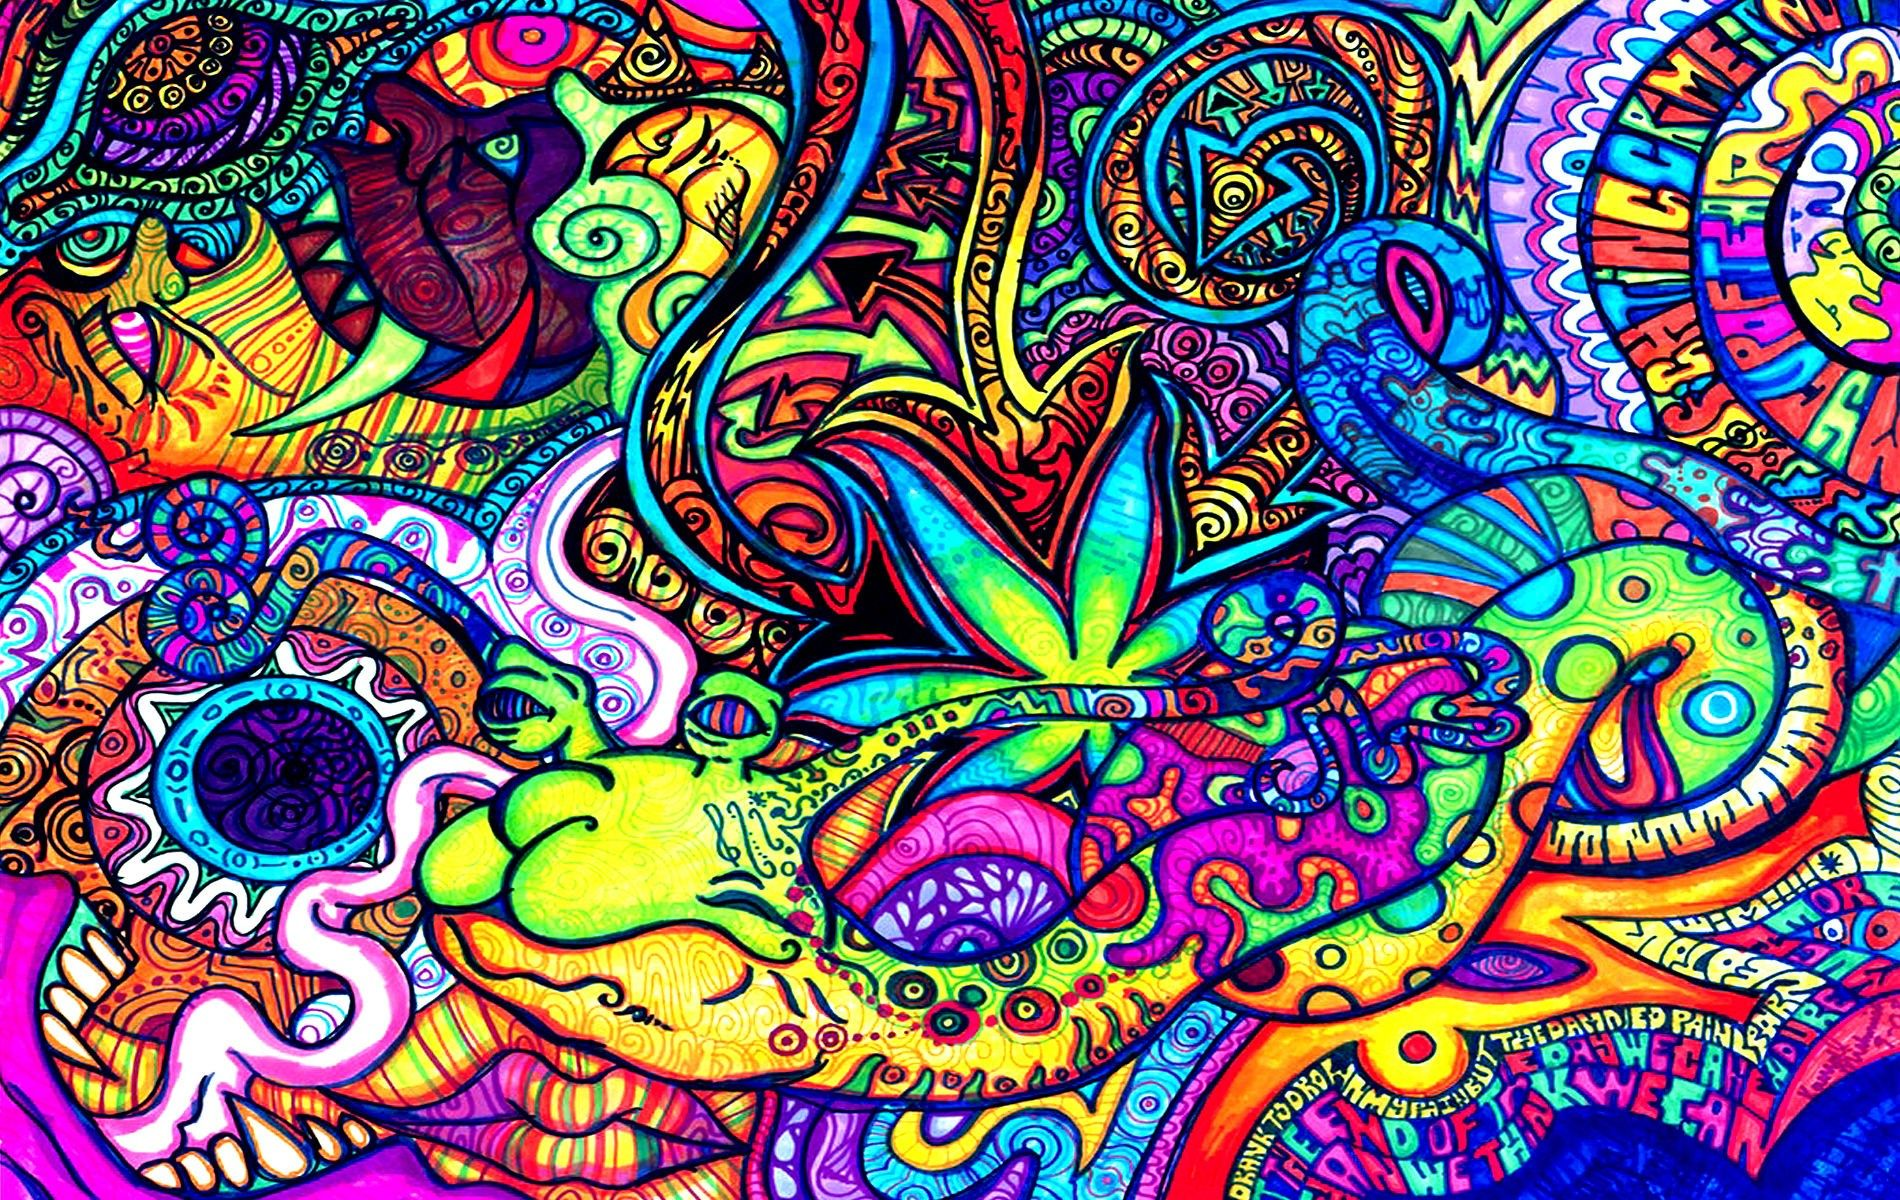 1900 x 1200 px psychedelic image for mac computers by Garwood Bishop